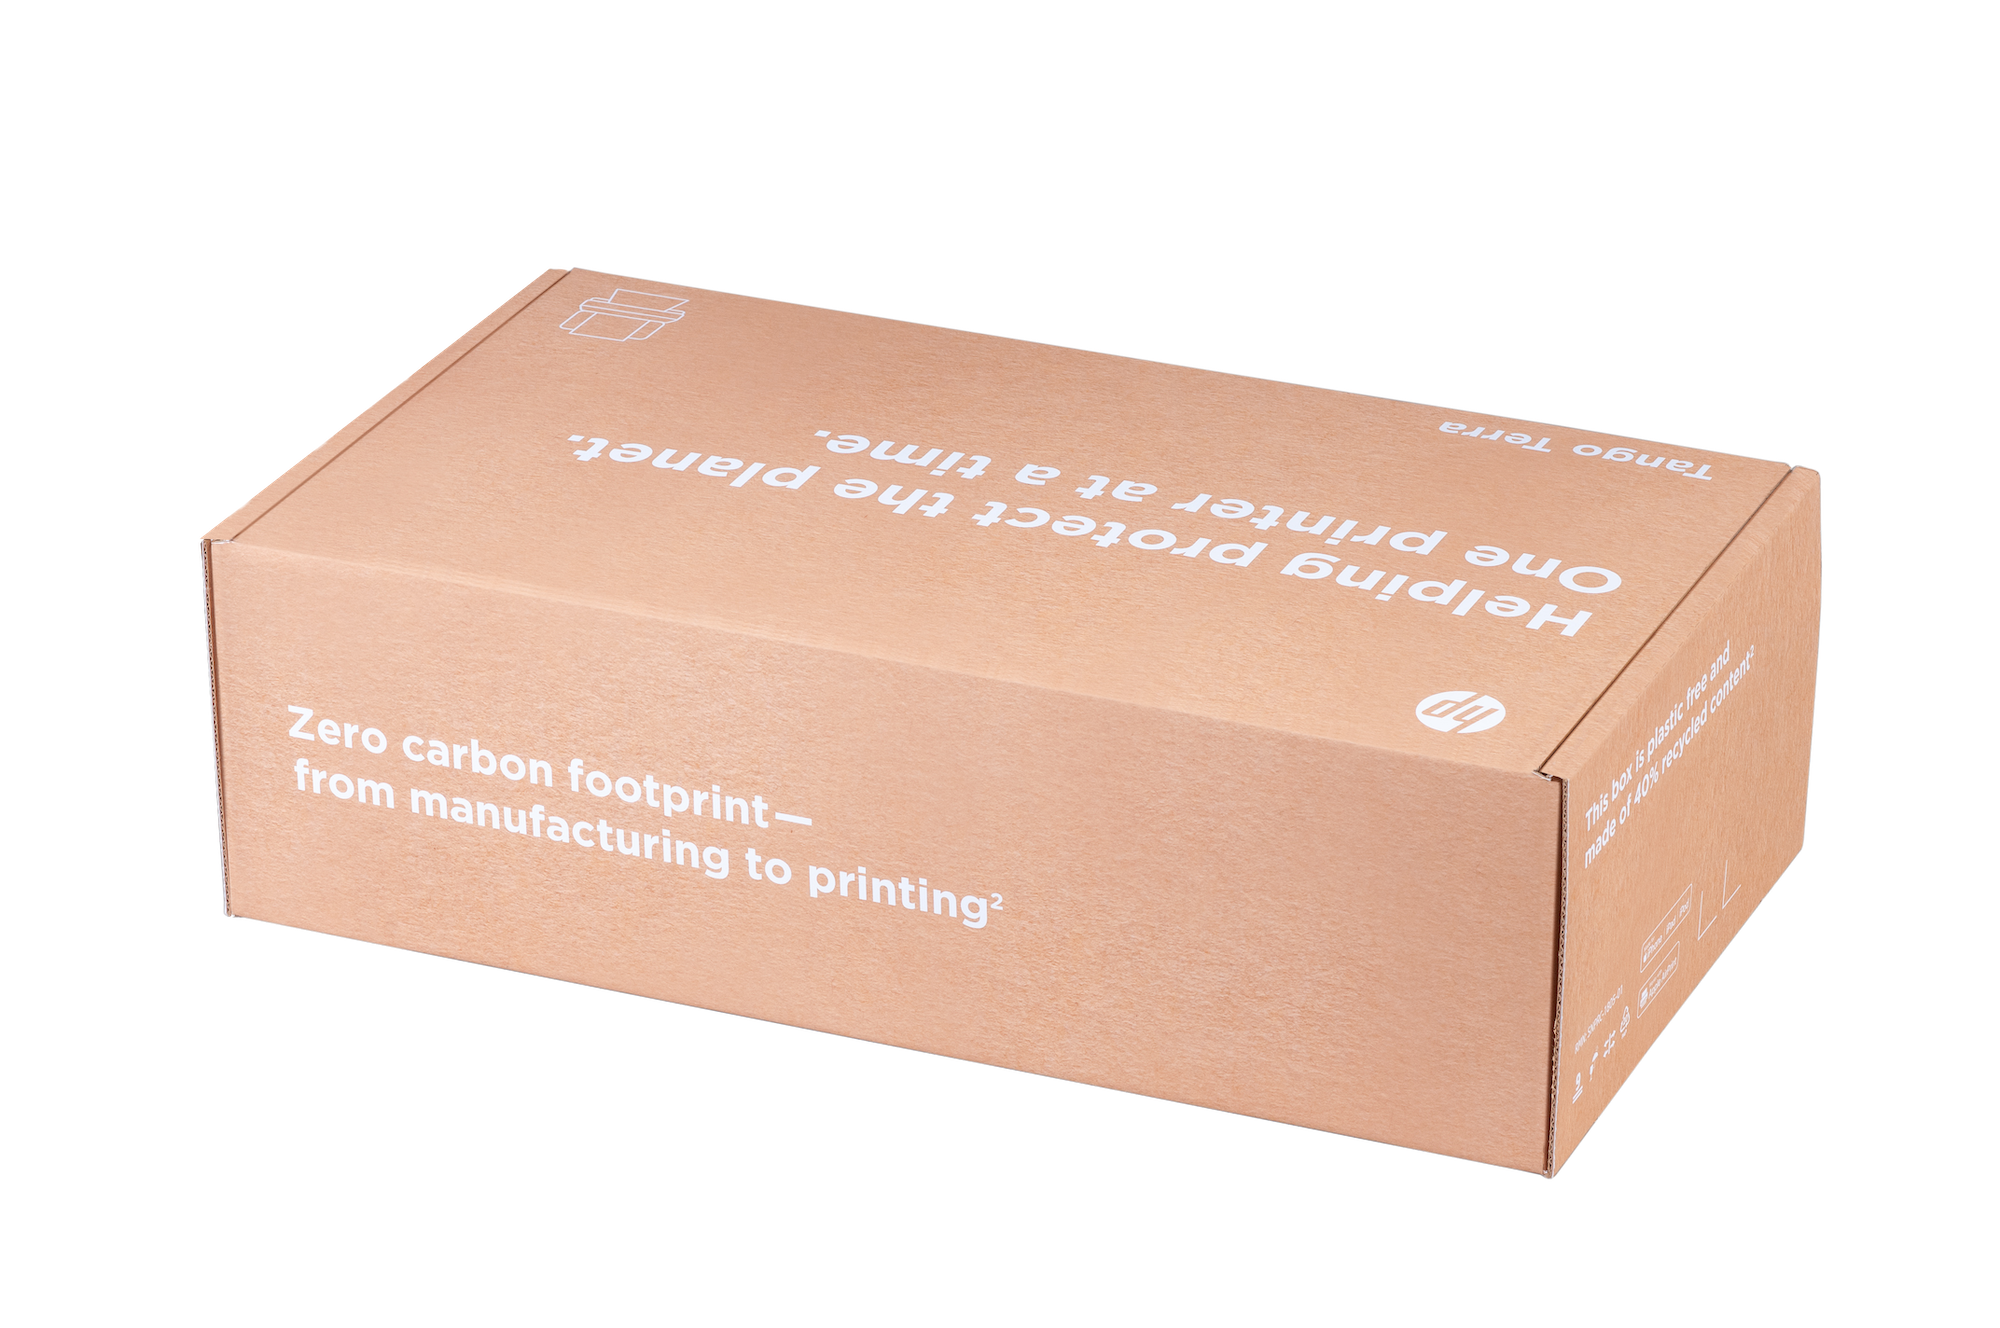 HP Tango Terra printer packaging